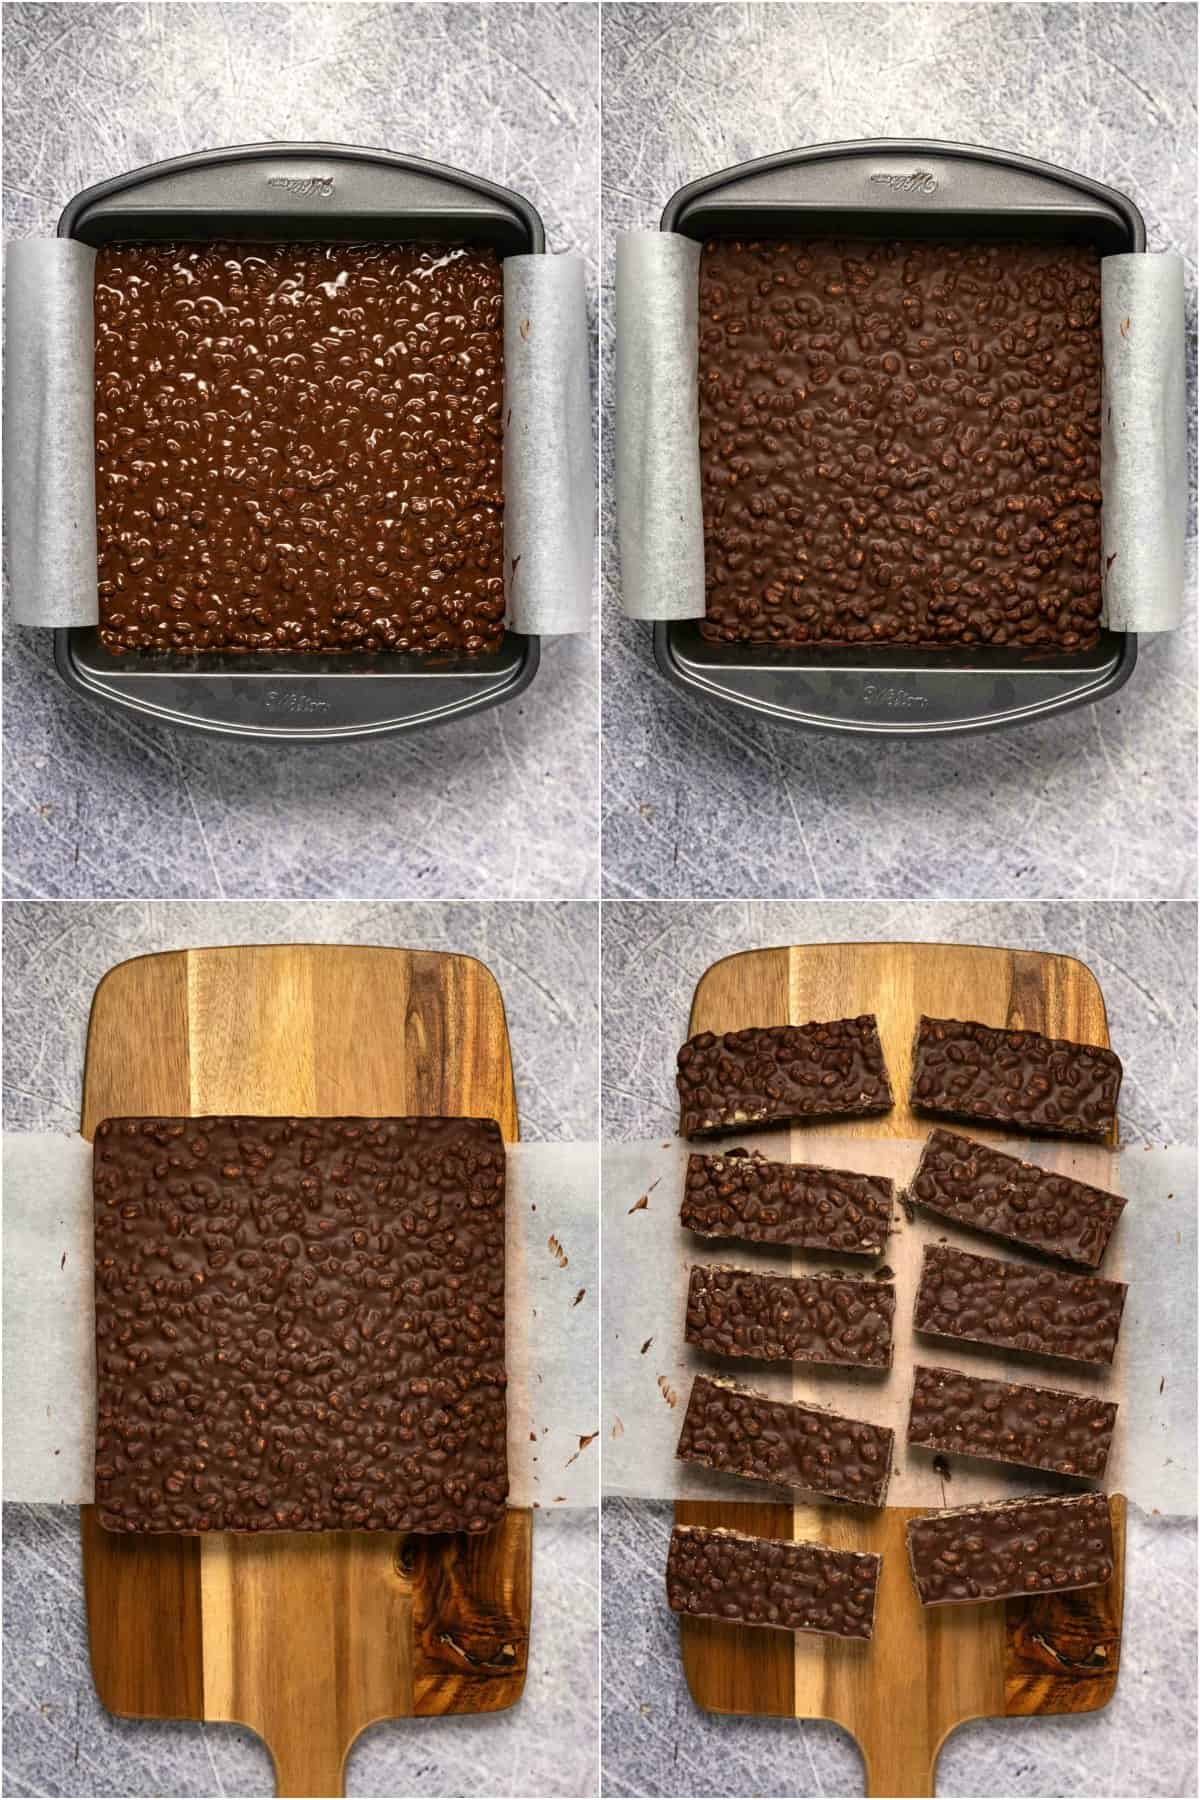 Step by step process photo collage of making vegan crunch bars.